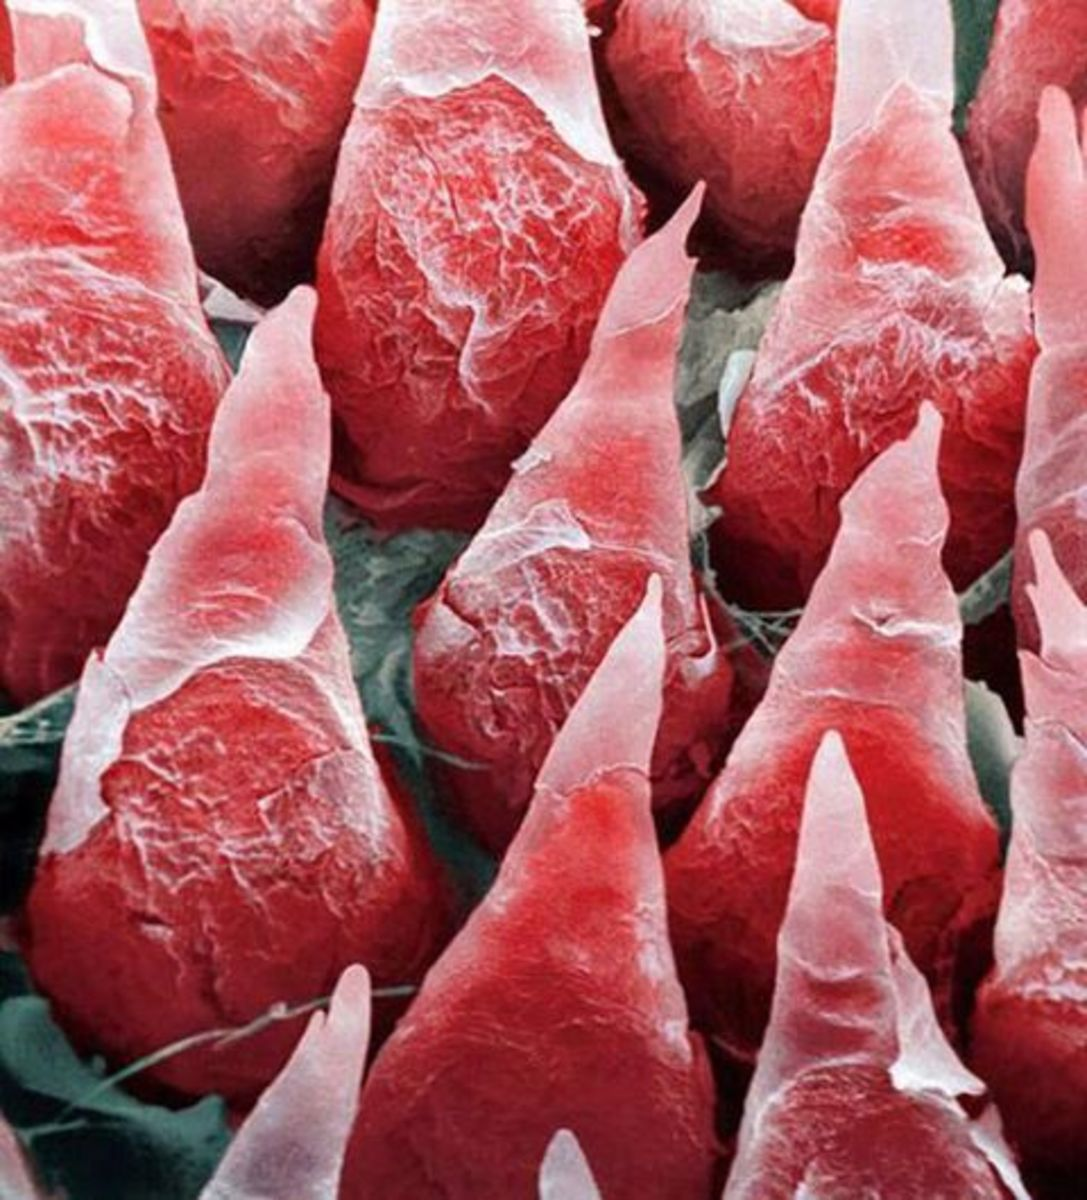 The human tongue is covered with tiny soft spikes called Filiform Papillae